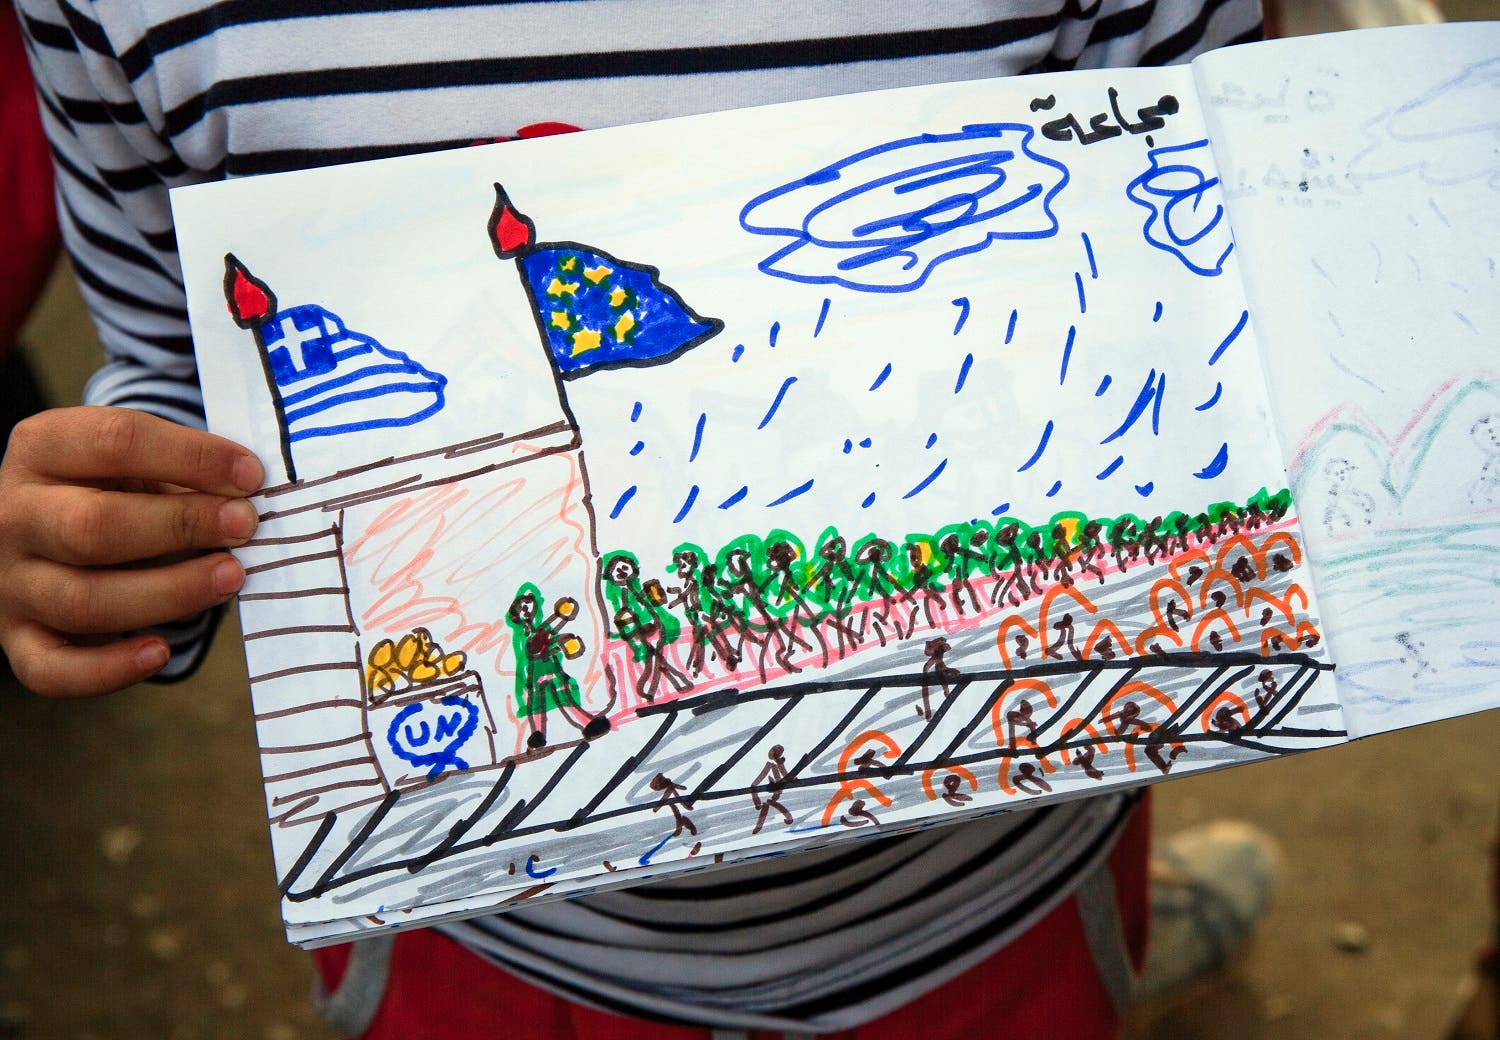 Shaharzad Hassan, 8 year-old from the Syrian city of Aleppo poses with a drawing she made at the northern Greek border station of Idomeni, Friday, March 11, 2016. At an overcrowded refugee camp on the Greek-Macedonian border, 8-year-old Shaharzad Hassan draws pictures of the harrowing events in her life over the past 18 months: Pictures of death in her home town of Aleppo, Syria, and her perilous journey to Europe .(AP Photo/Vadim Ghirda)